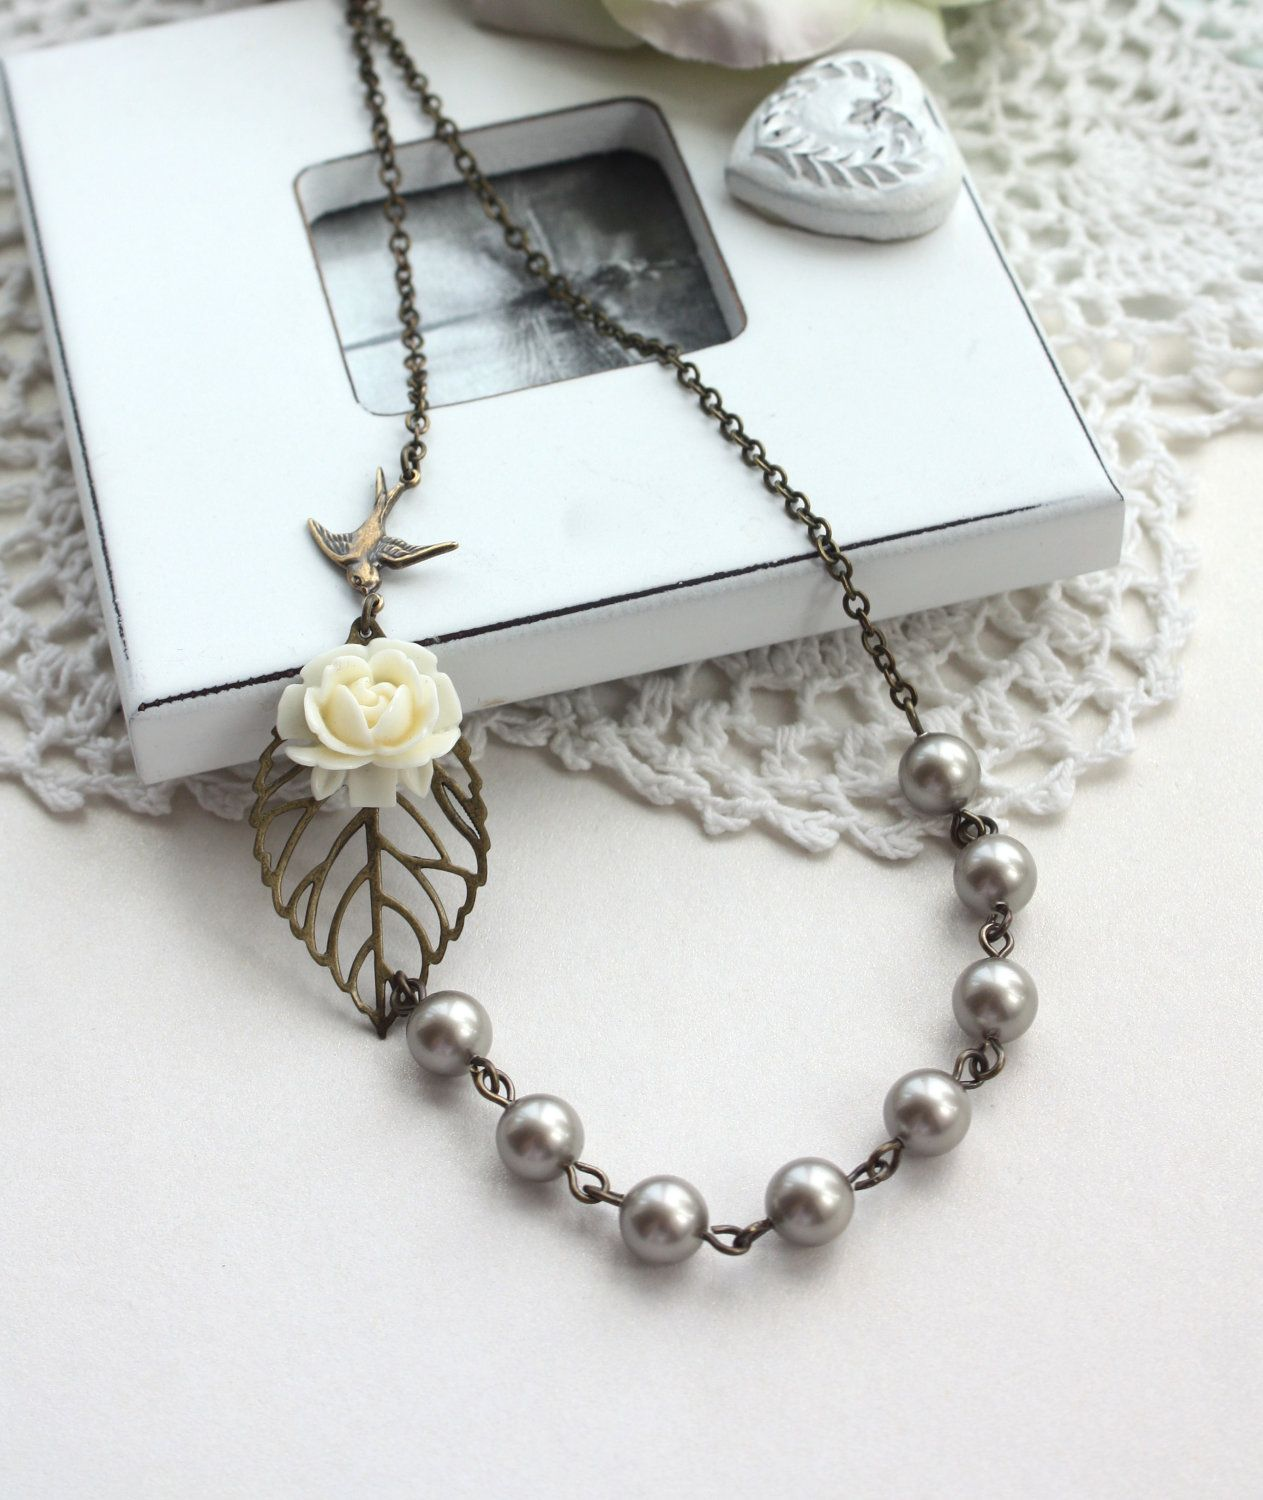 An Ivory Rose Flower, Leaf, Flying Swallow Bird, Platinum, Dark Grey Pearl Necklace. Vintage Bride. Bridesmaid Necklace. Wedding Gifts.. $29.50, via Etsy.